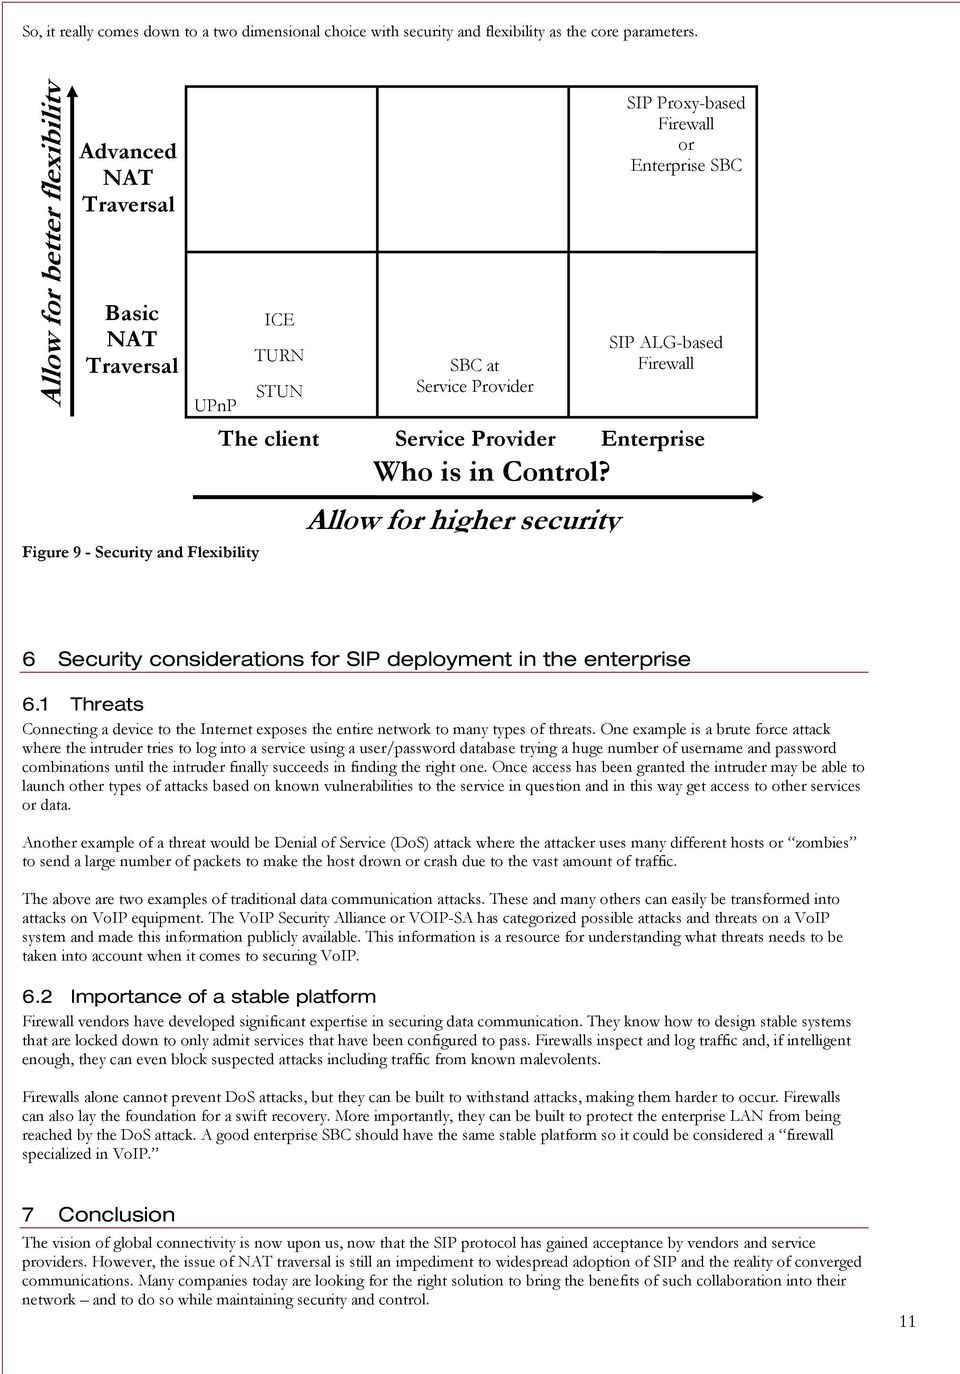 ALG-based Firewall The client Service Provider Enterprise Who is in Control? Allow for higher security 6 Security considerations for SIP deployment in the enterprise 6.